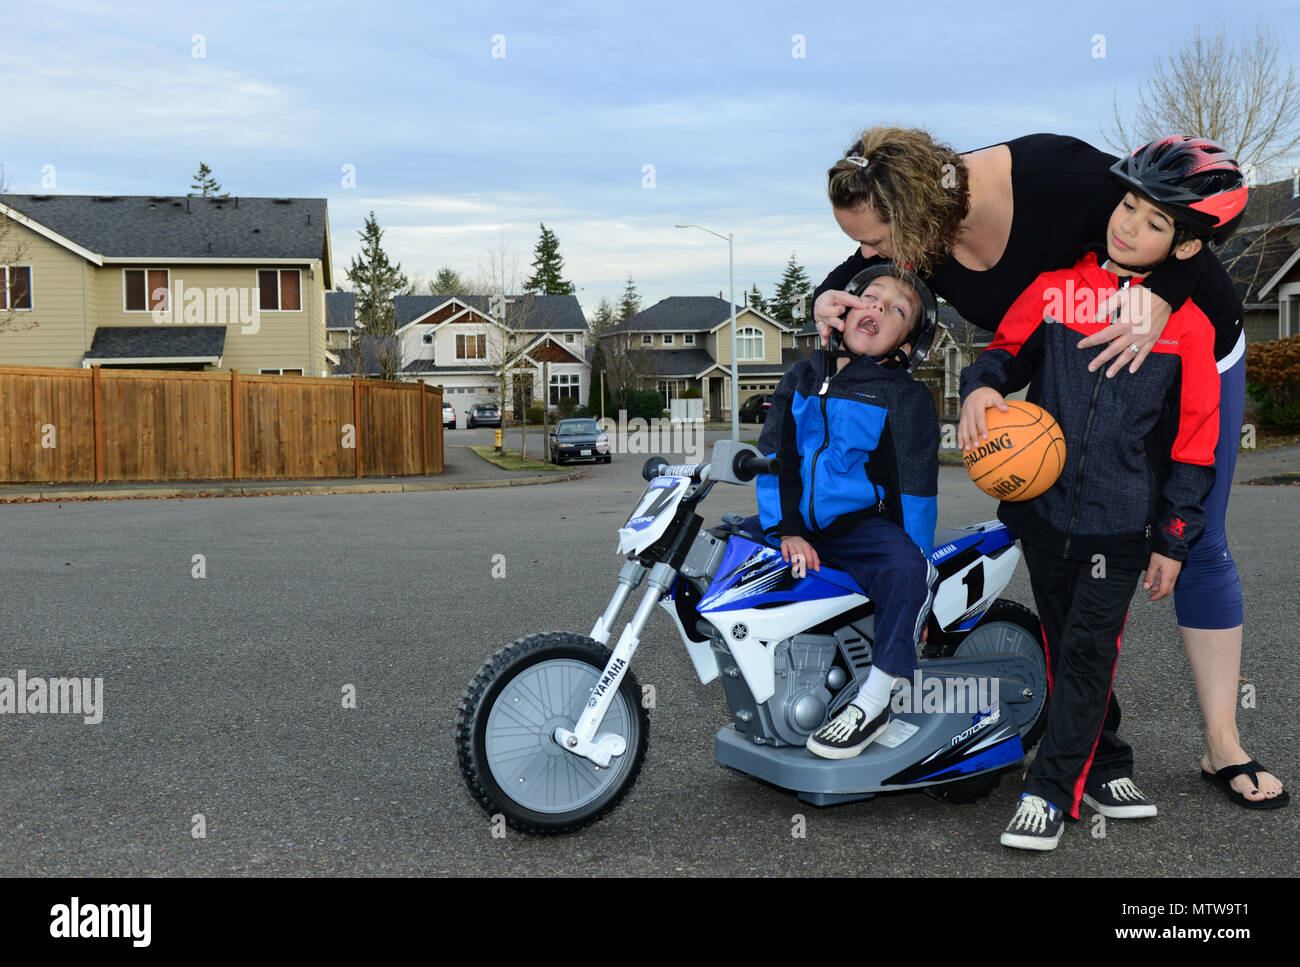 Coast Guard Chief Petty Officer Nichole Vital plays with her kids, Noah and Ethan, outside their home in Bothell, Wash., Jan. 16, 2017. Noah, 5, and Ethan, 7, both have special needs, making Vital's ability to have a balanced work life routine a little difficult. U.S. Coast Guard photo by Petty Officer 2nd Class Ali Flockerzi. - Stock Image